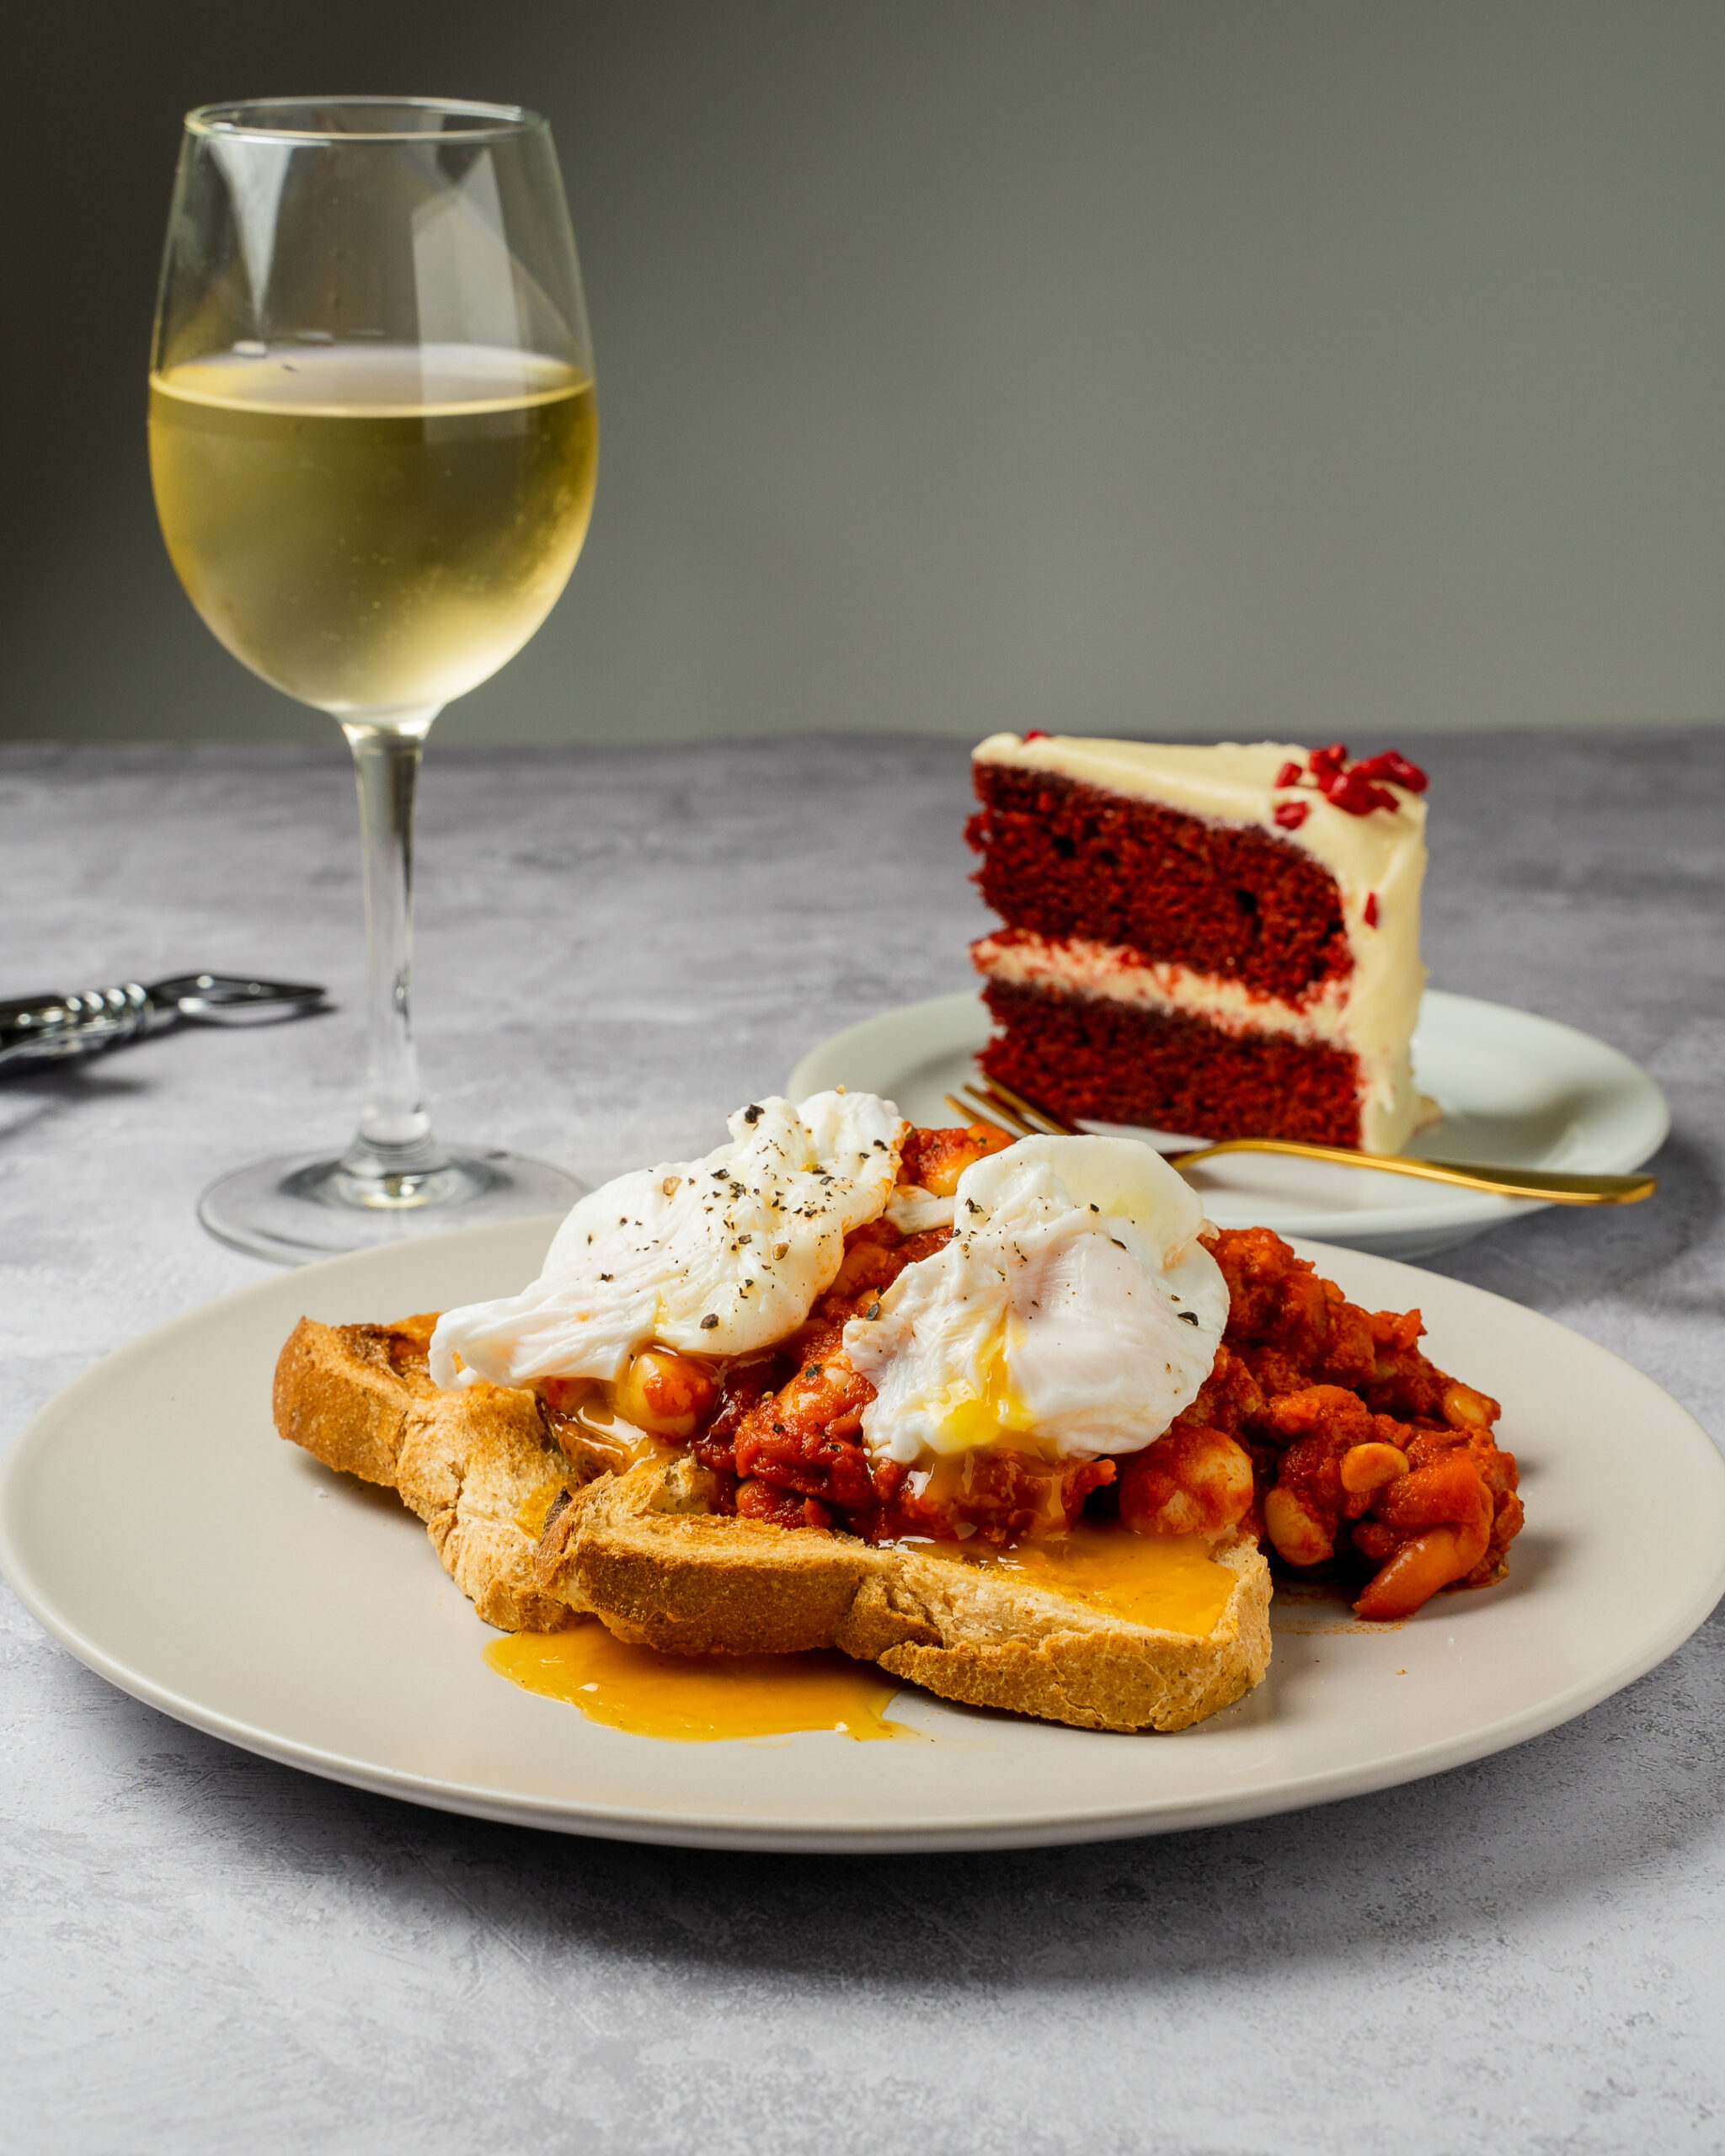 Afternoon Tea & Bottomless Cake Brunches at Jack and  Beyond - The Full Bottomless Brunch experience includes unlimited prosecco, a brunch dish and a slice of cake